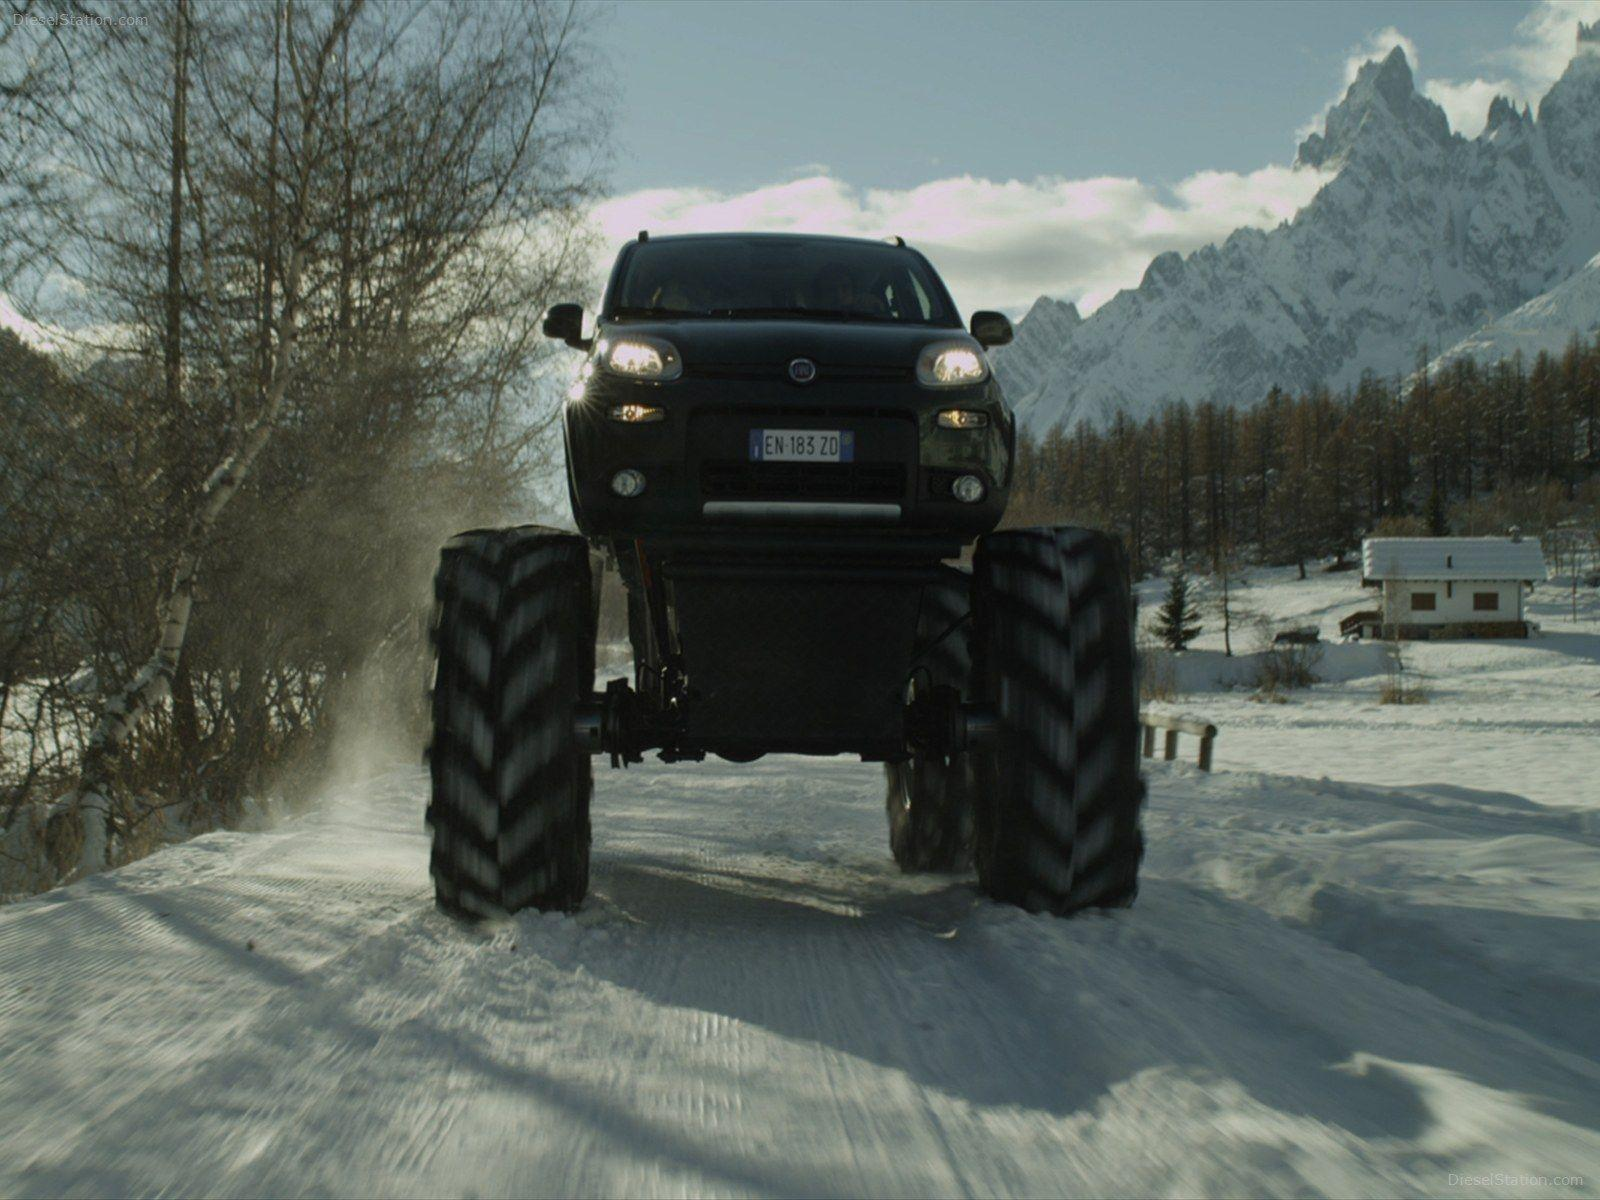 Fiat Panda Monster Truck 2013 Exotic Car Wallpaper #03 of 8 : Diesel ...